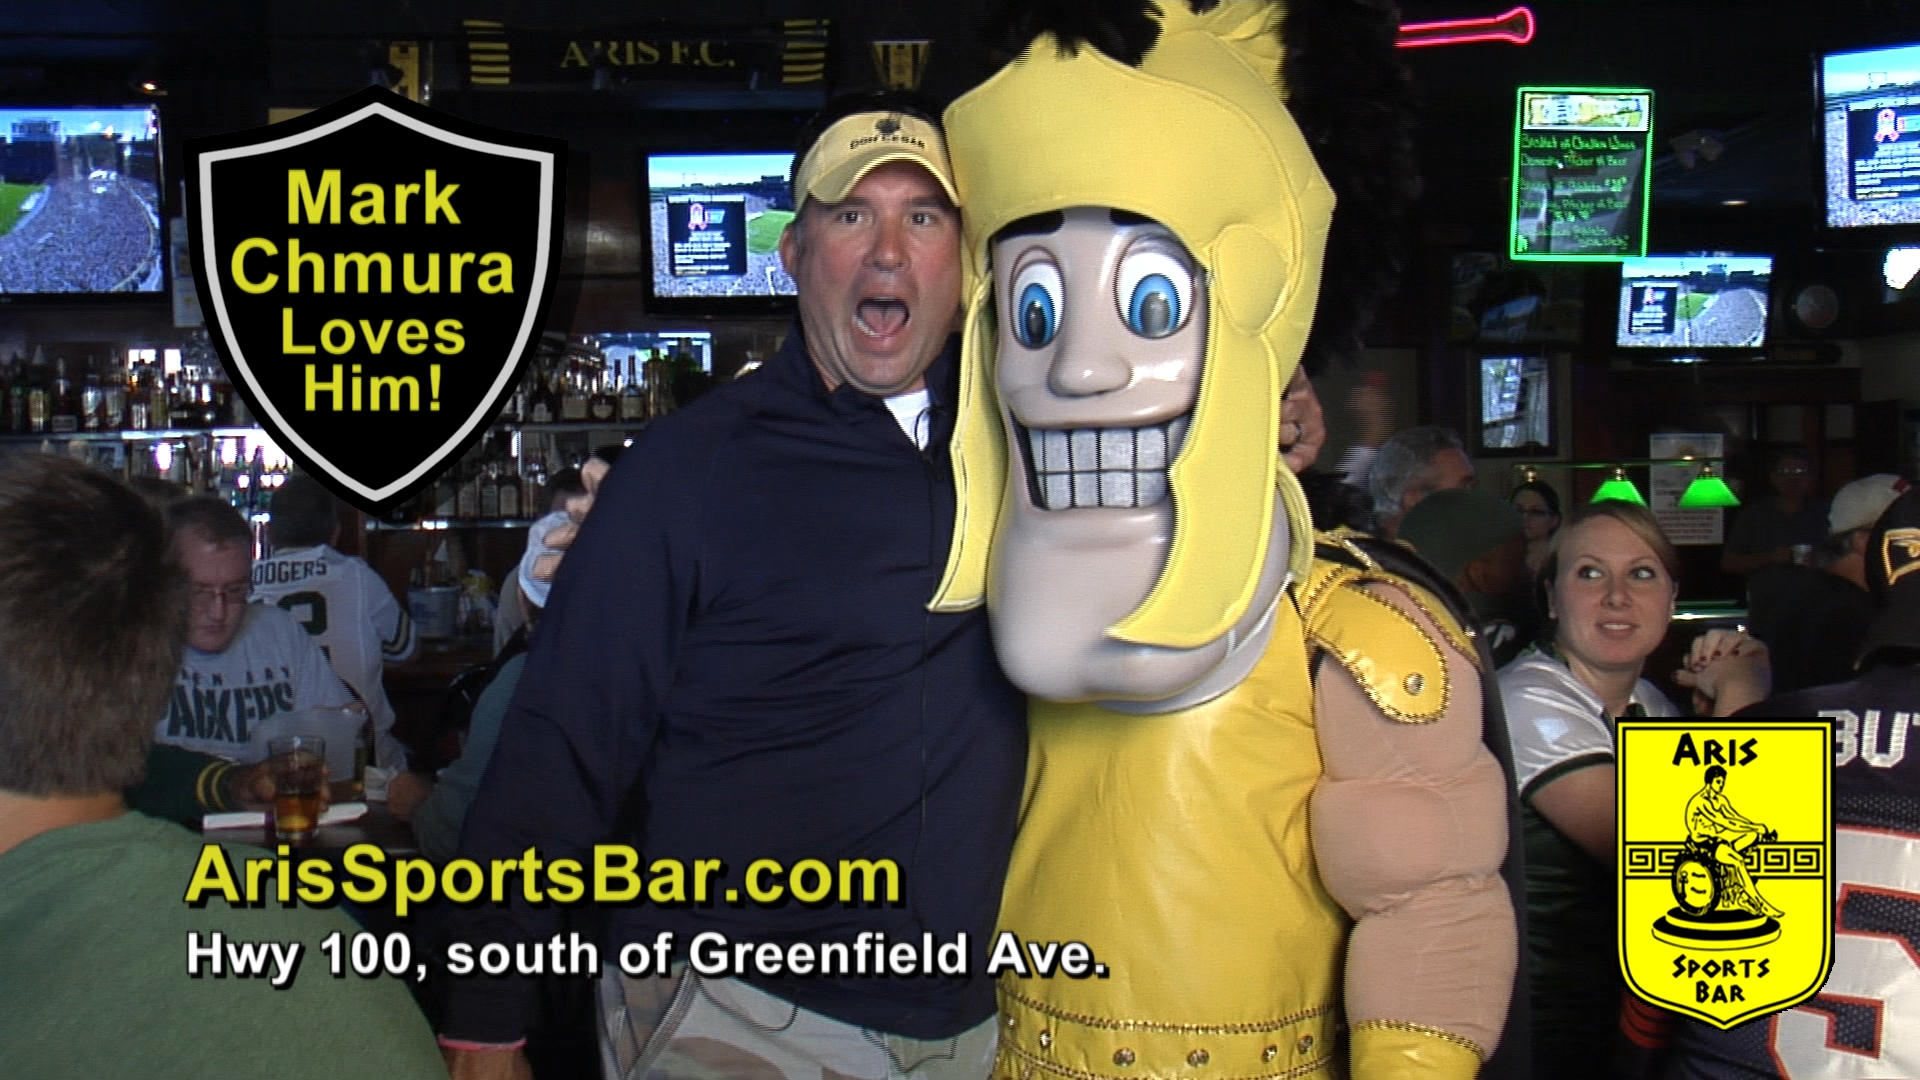 Bolder sports bar commercial